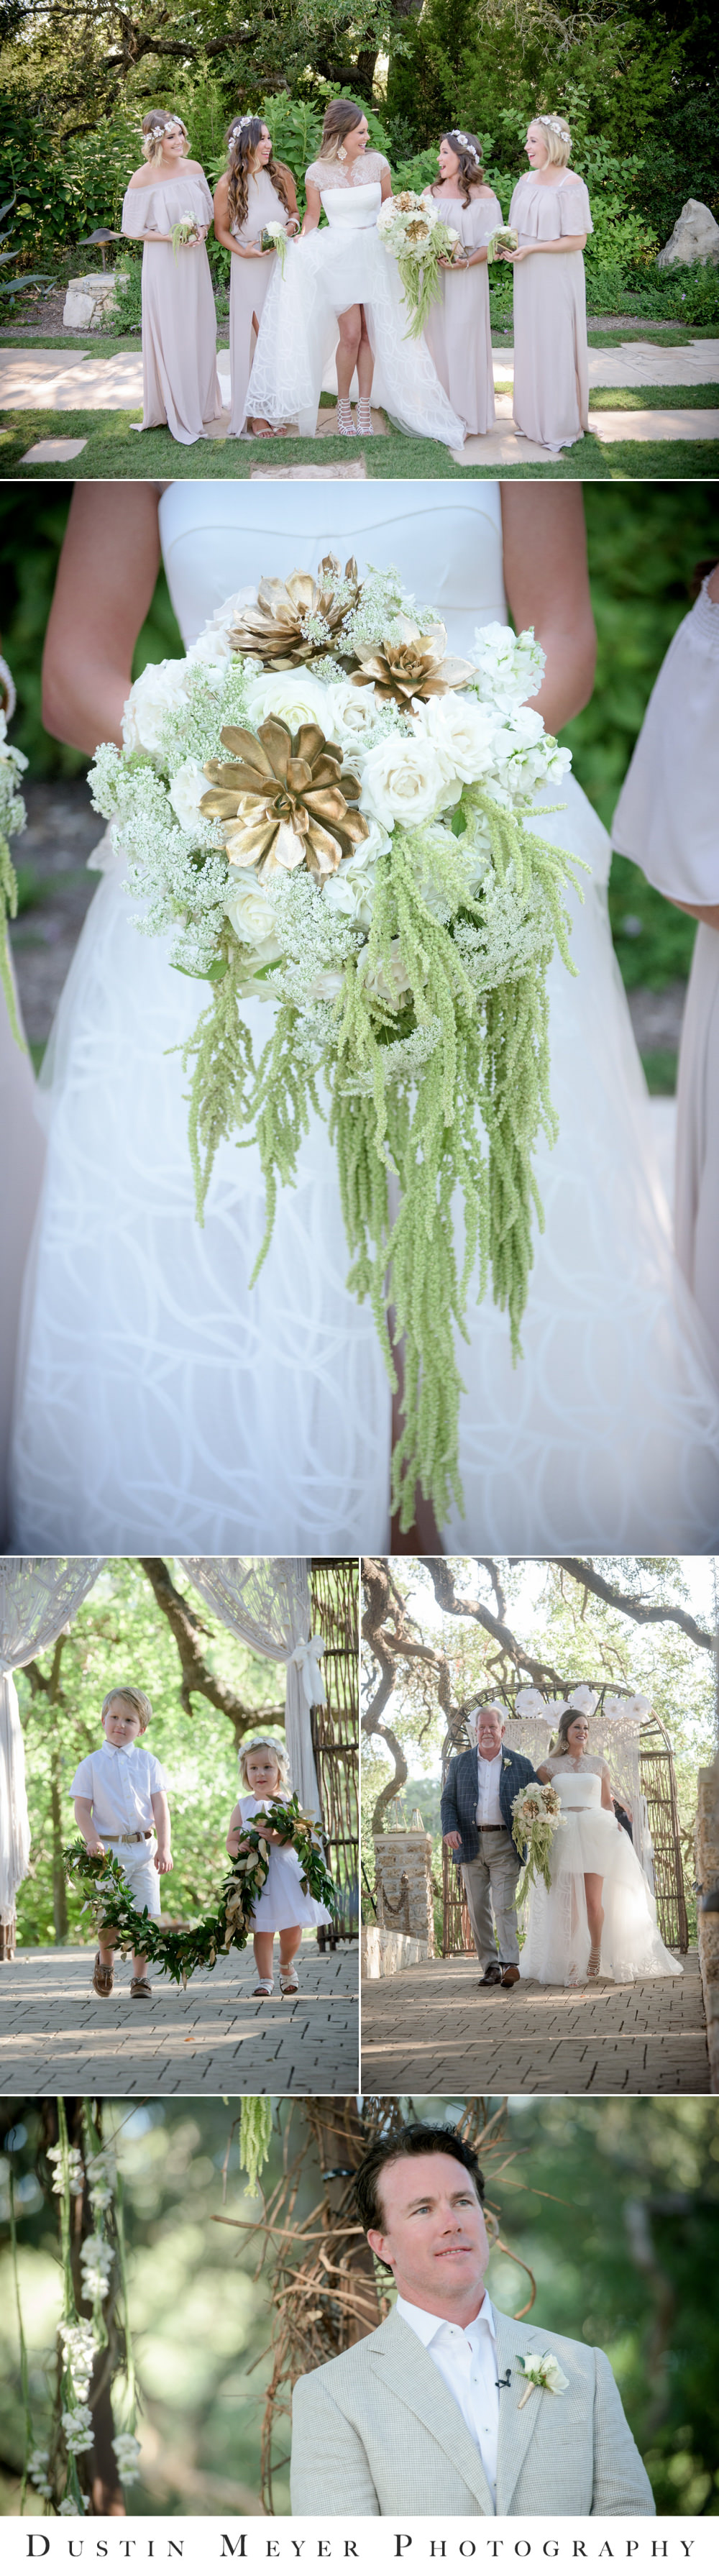 wedding bouquet, camp lucy wedding photos, sacred oaks wedding, father of the bride, groomsmen attire, flower girl dresses,